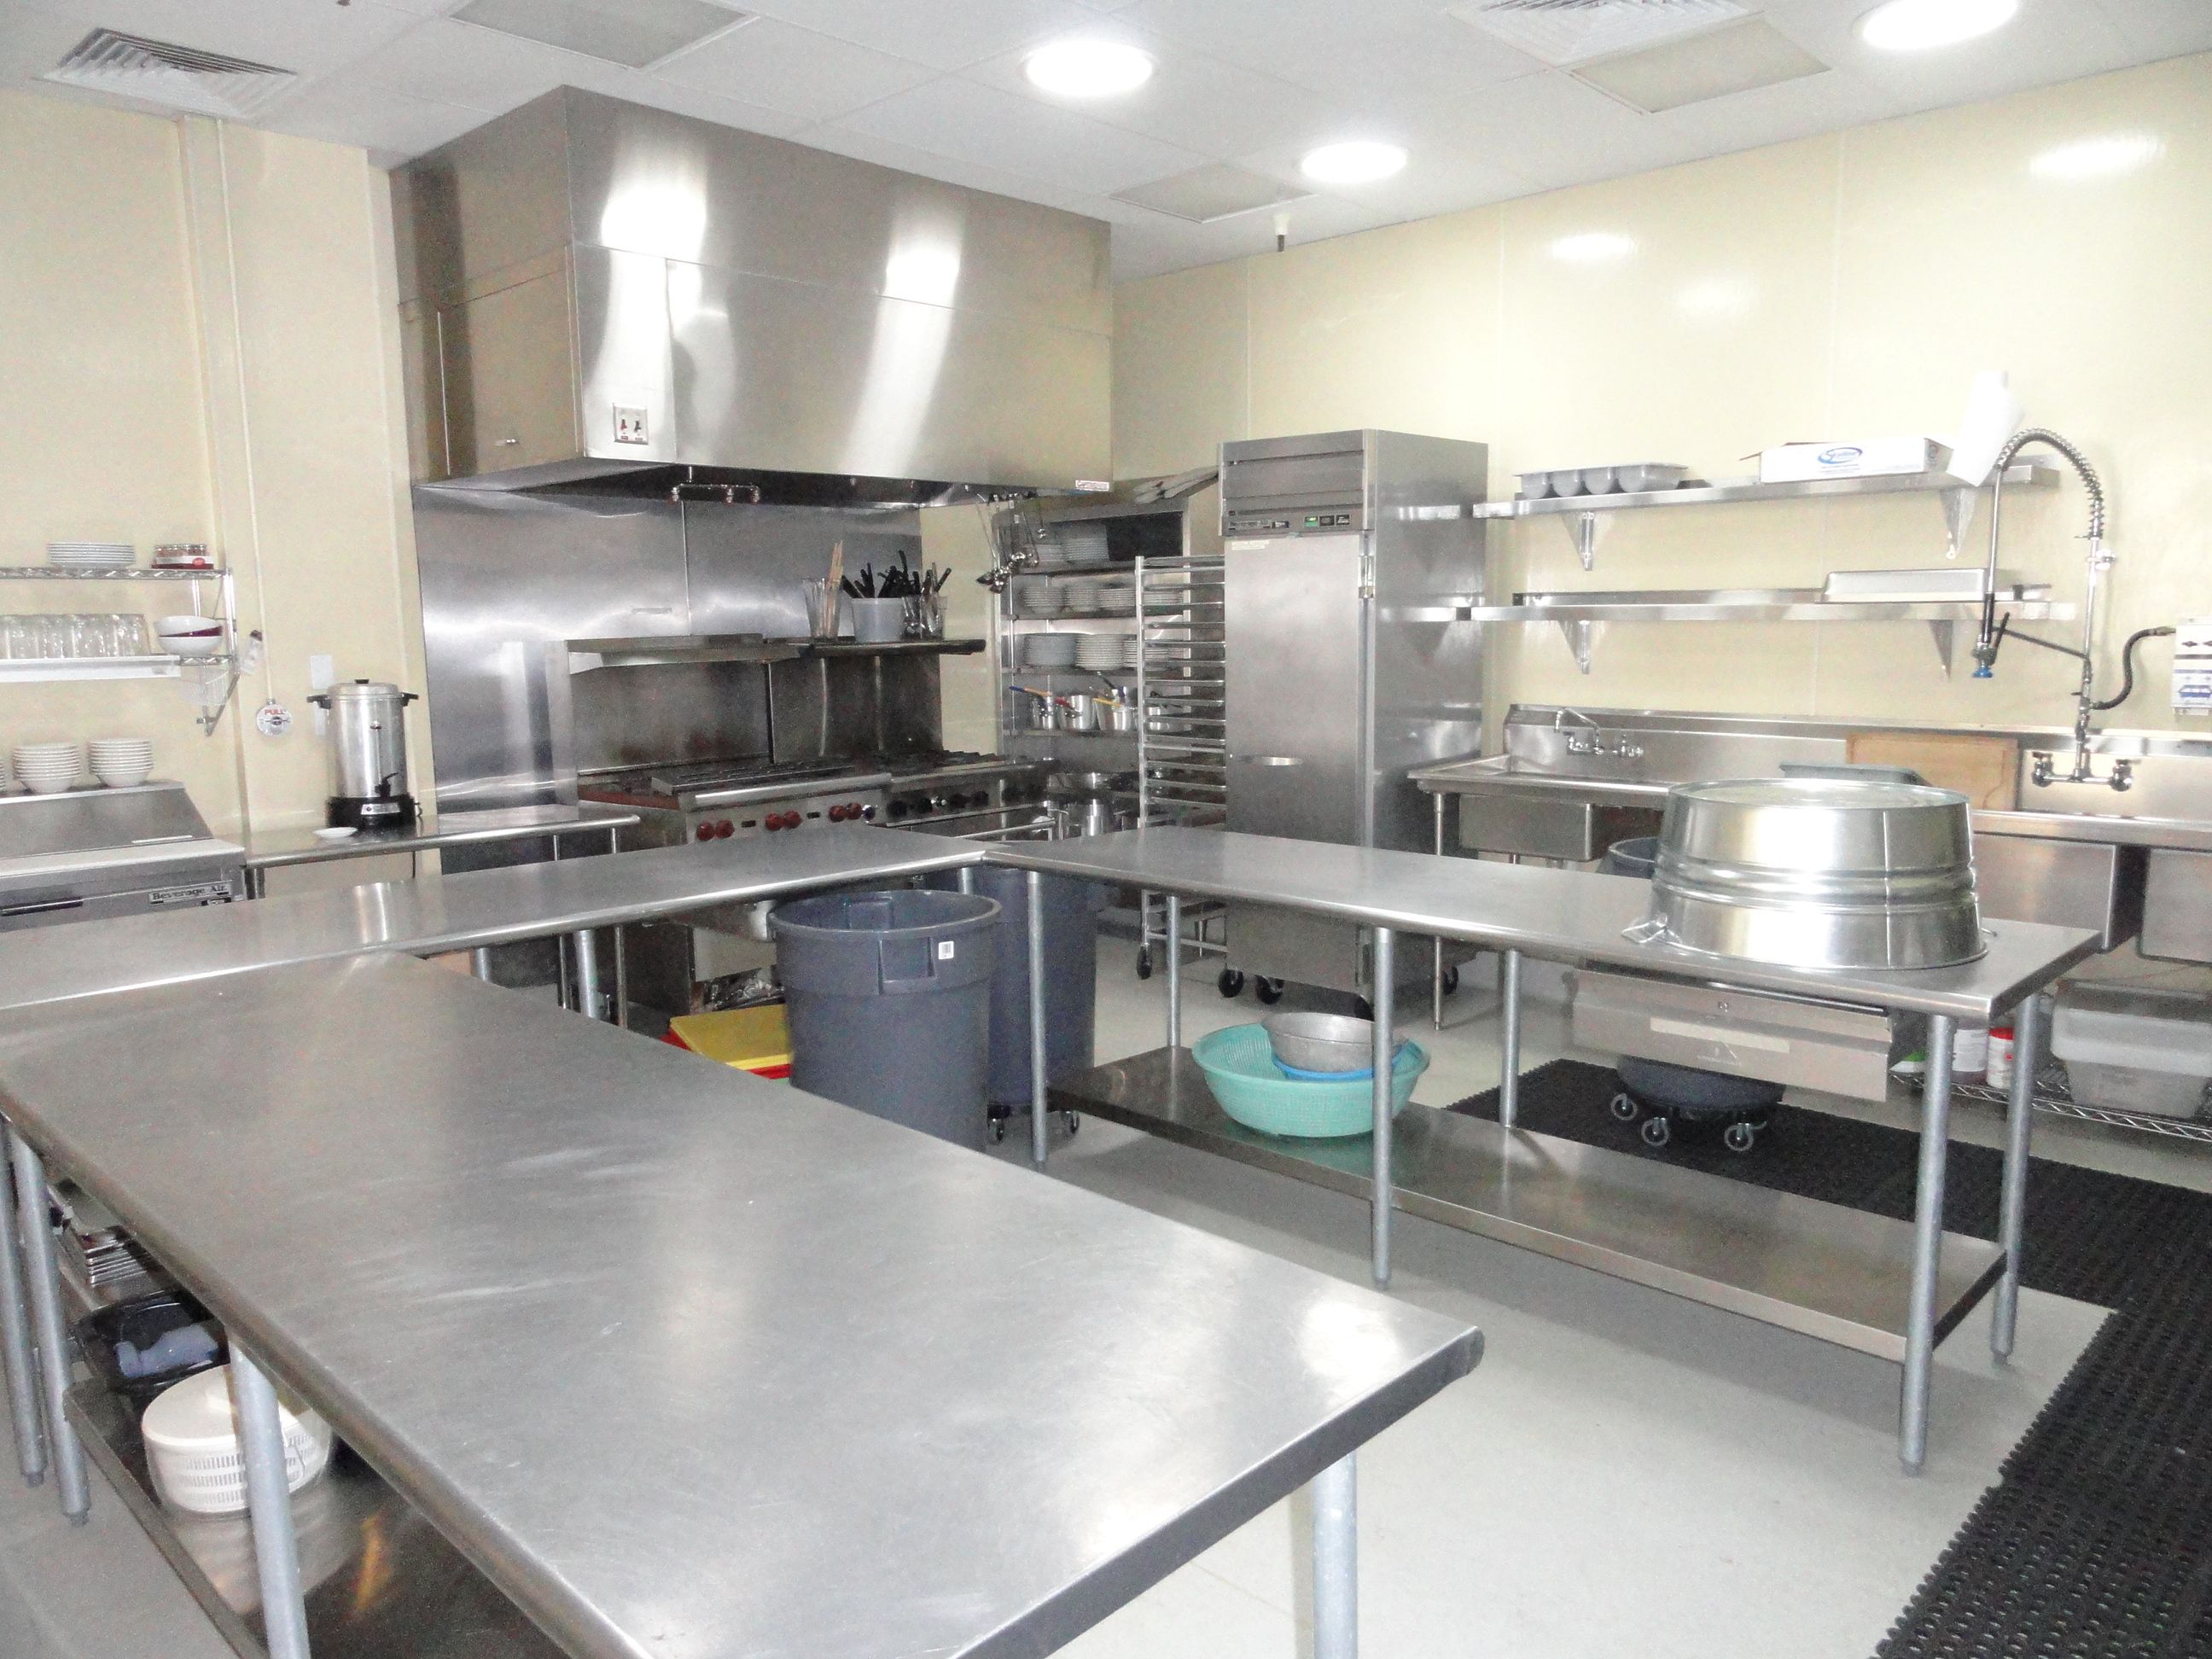 Restaurant Kitchen Ventilation best 25+ commercial kitchen equipments ideas on pinterest